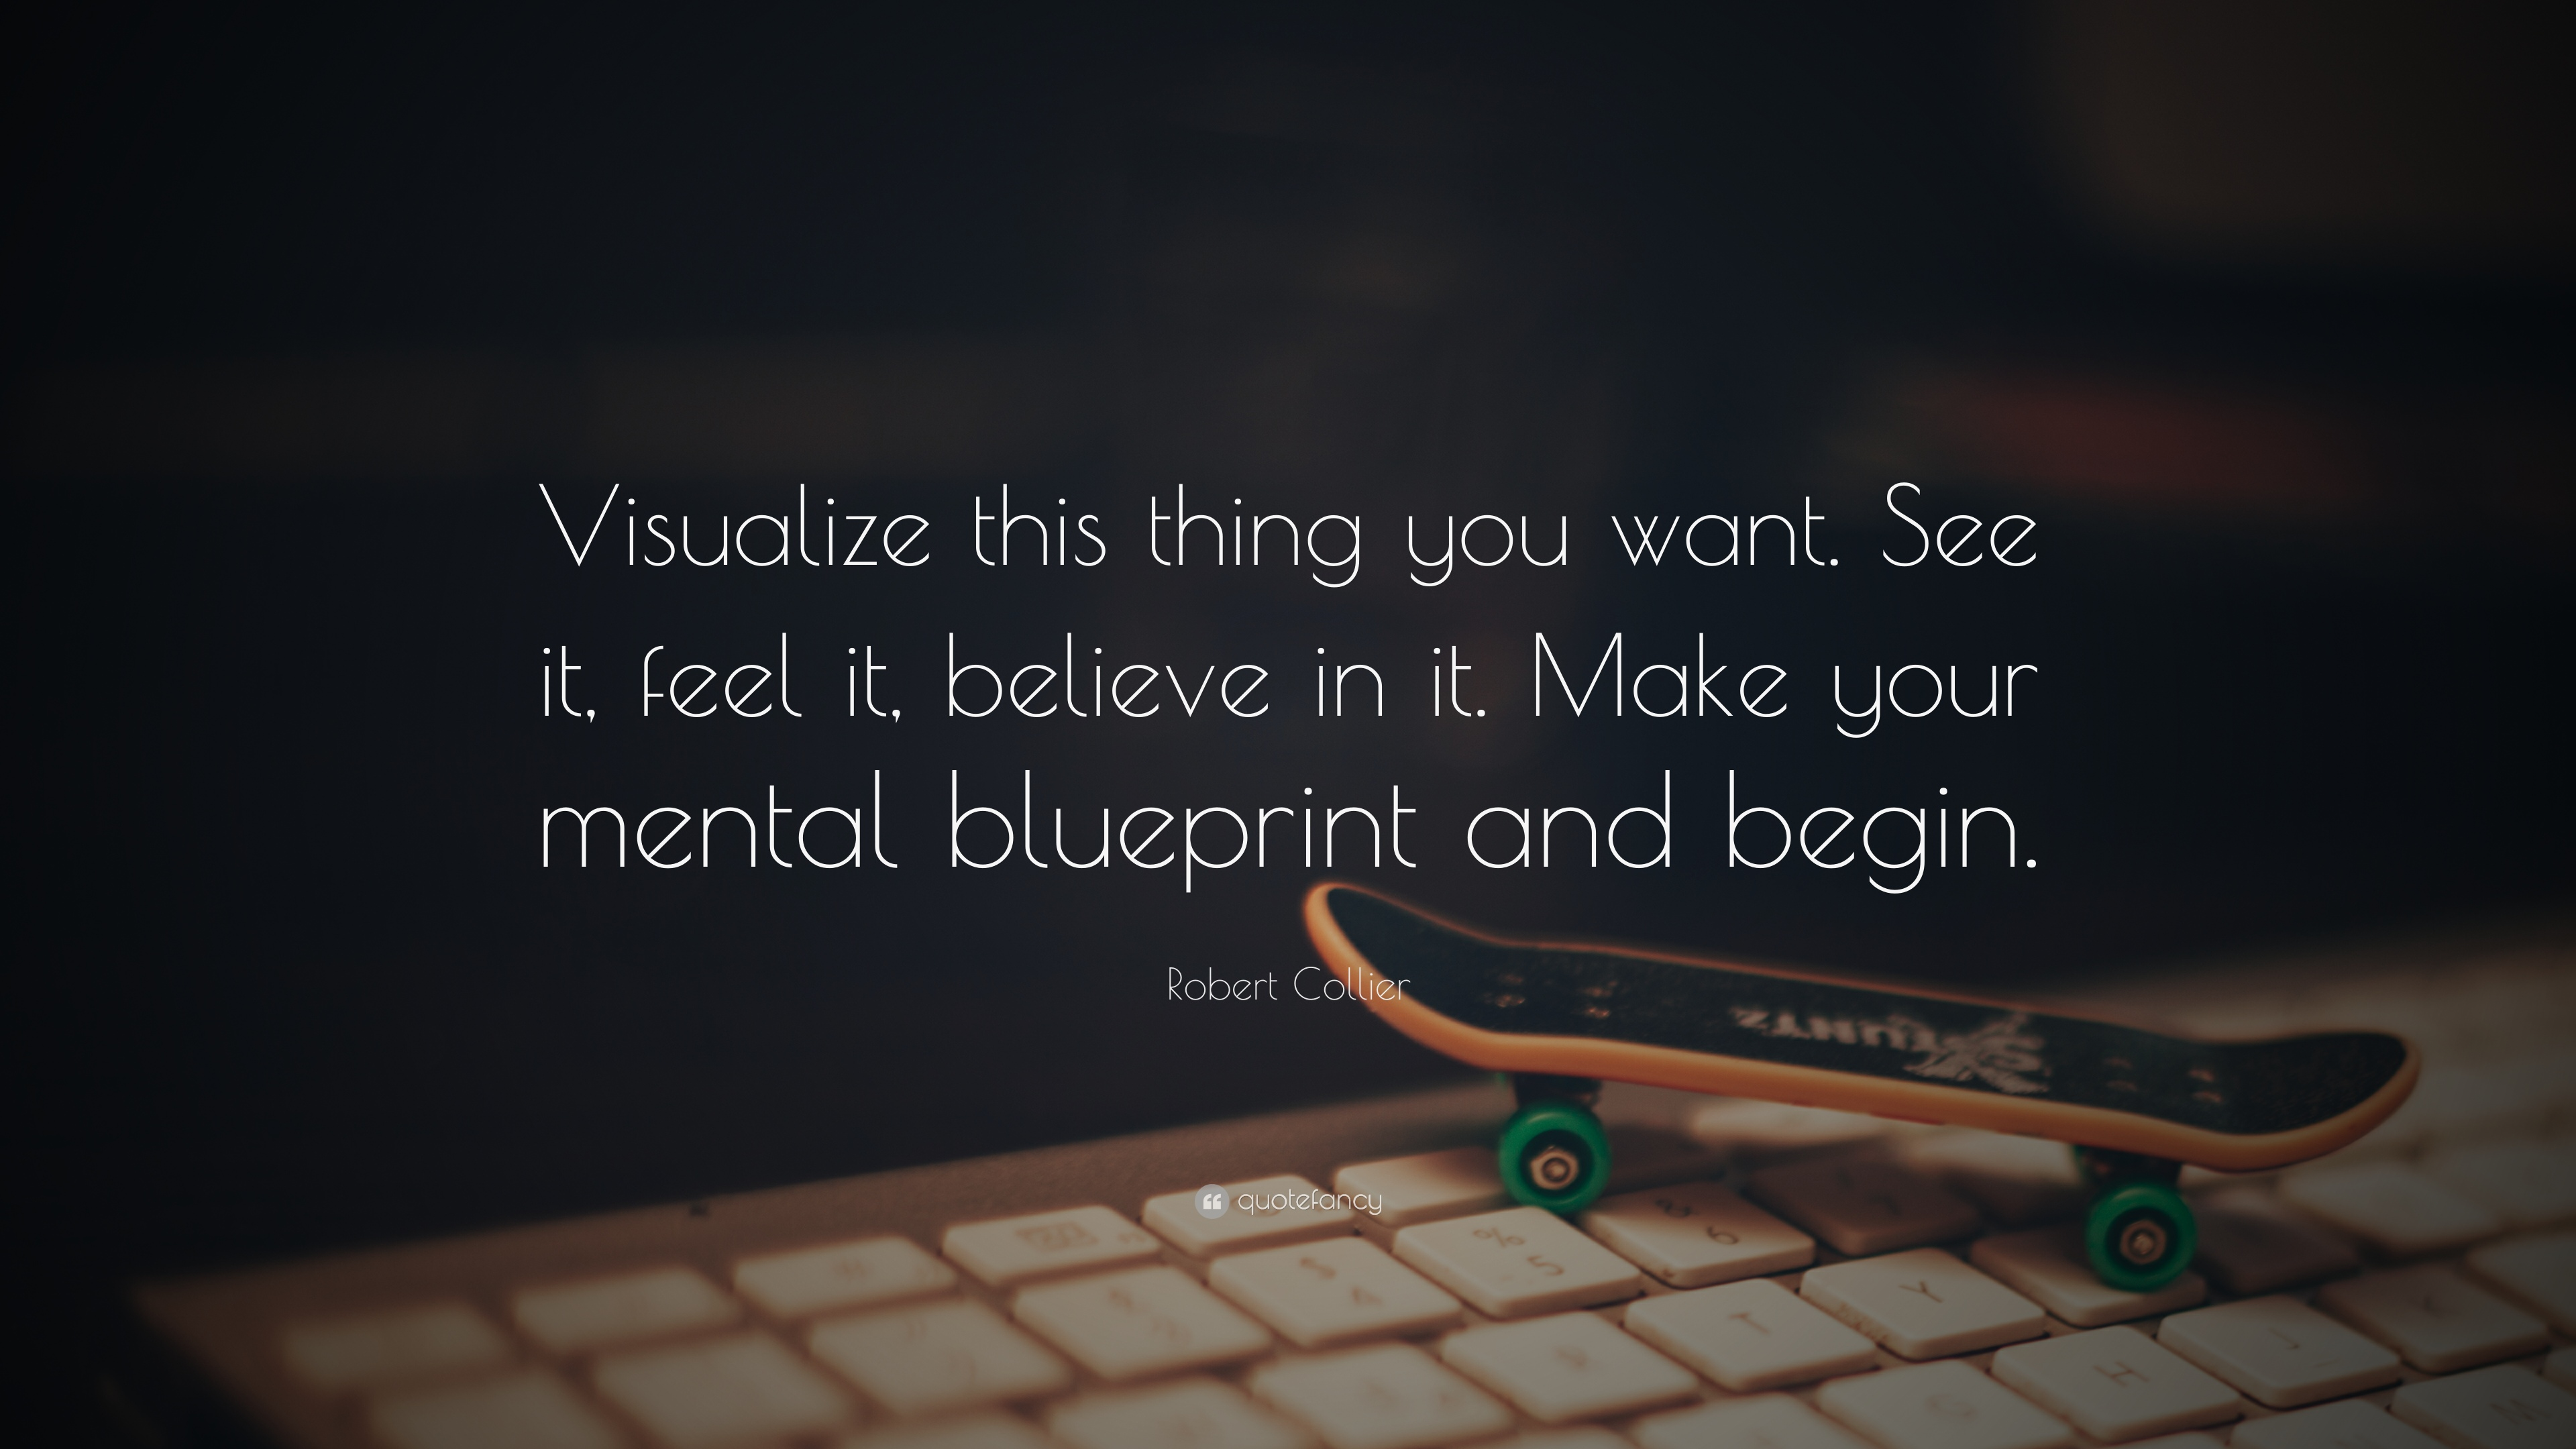 Inspirational Entrepreneurship Quotes (69 wallpapers ... |Visualize Success Quotes